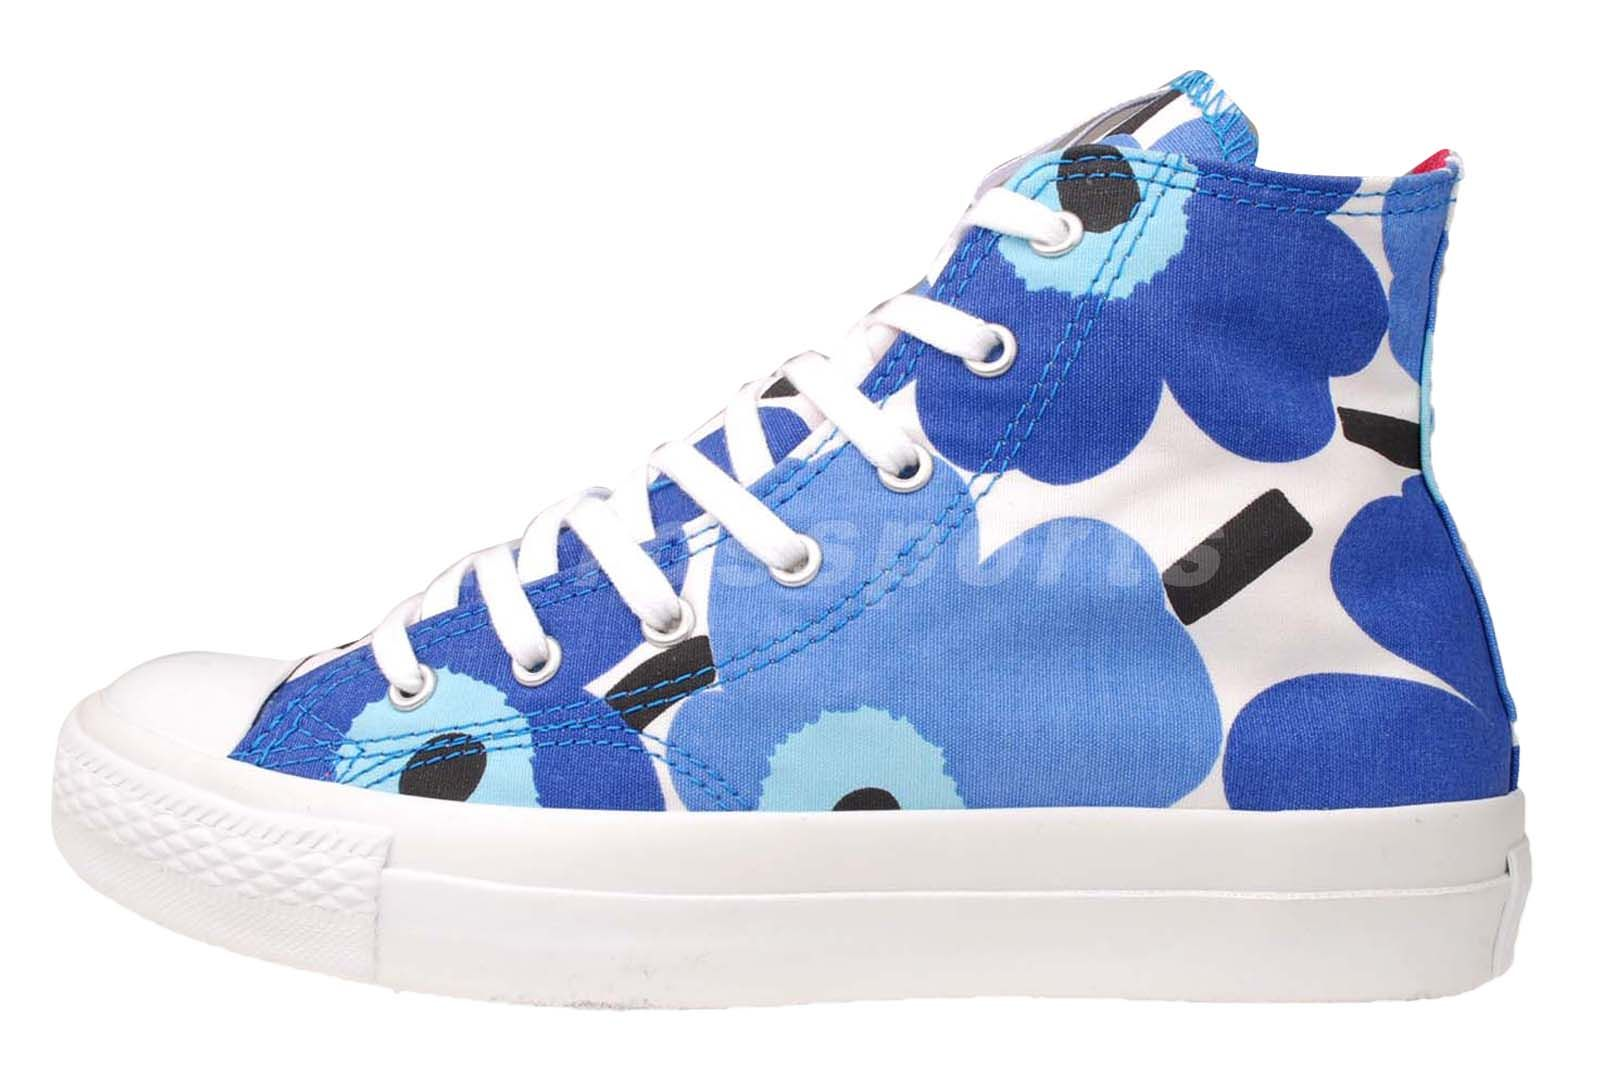 info for 17028 c395f Converse X Marimekko Chuck Taylor All Star Prem HI Blue White Womens Casual  Shoe   eBay  dental  poker